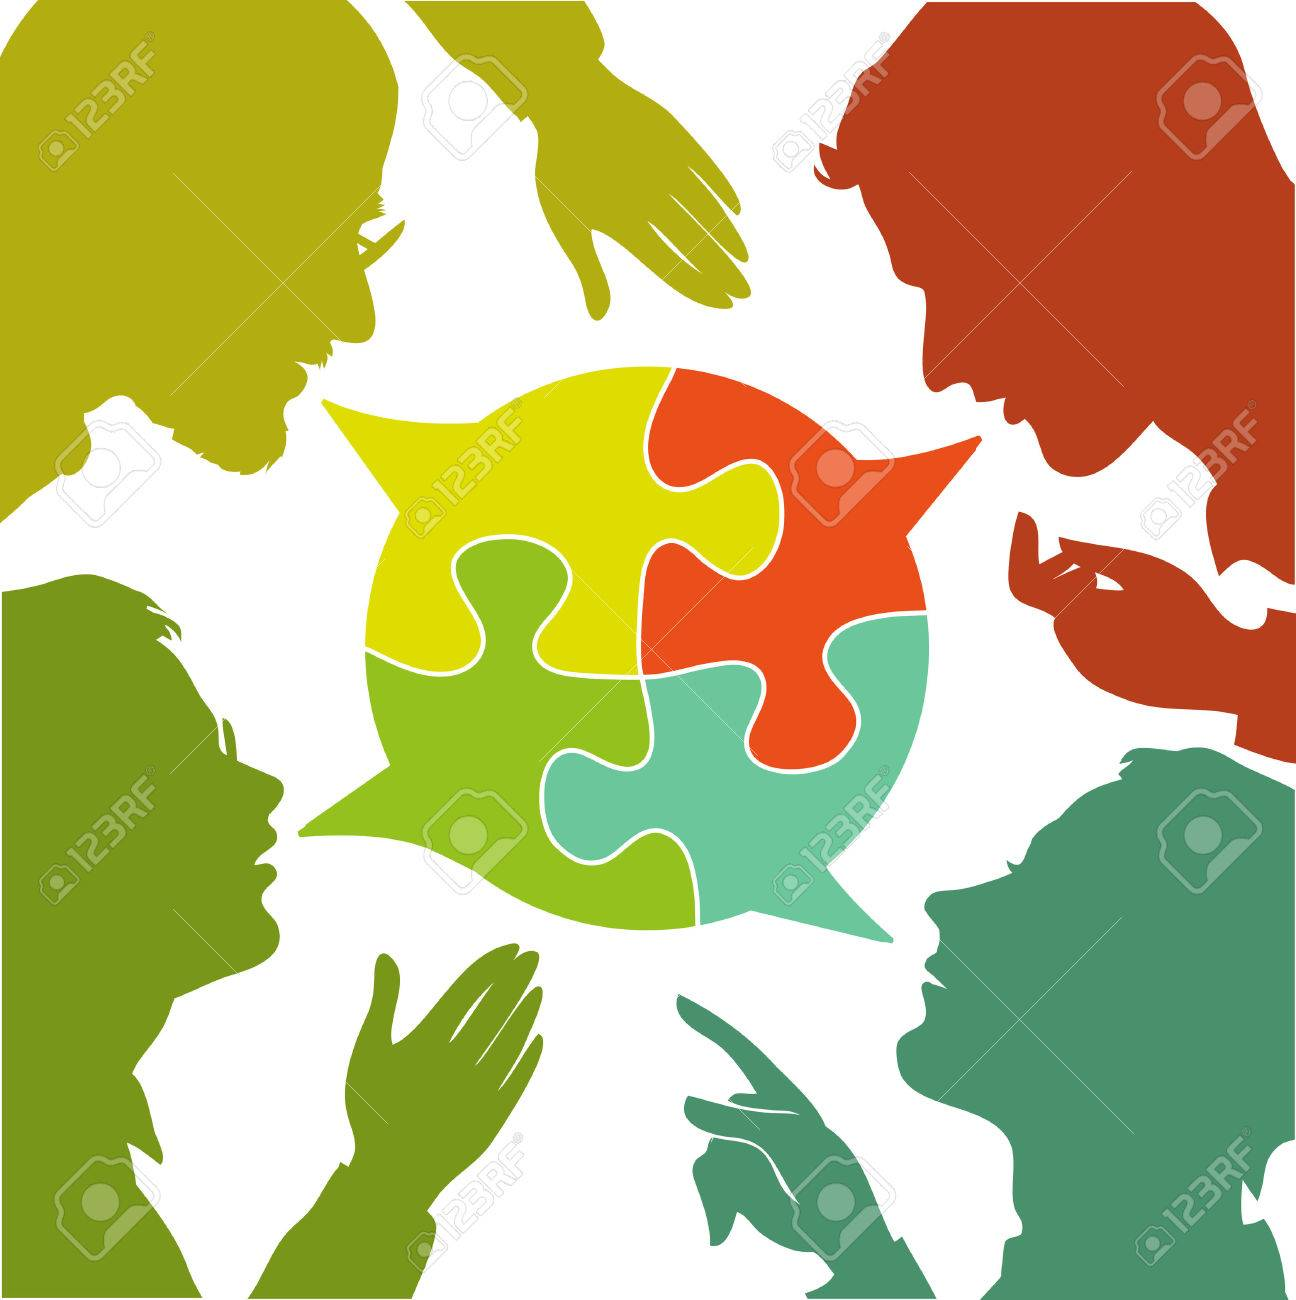 silhouettes of people leading dialogues with colorful speech bubbles. Speech bubbles in the form of puzzles. Dialogue and consensus. Standard-Bild - 46515309